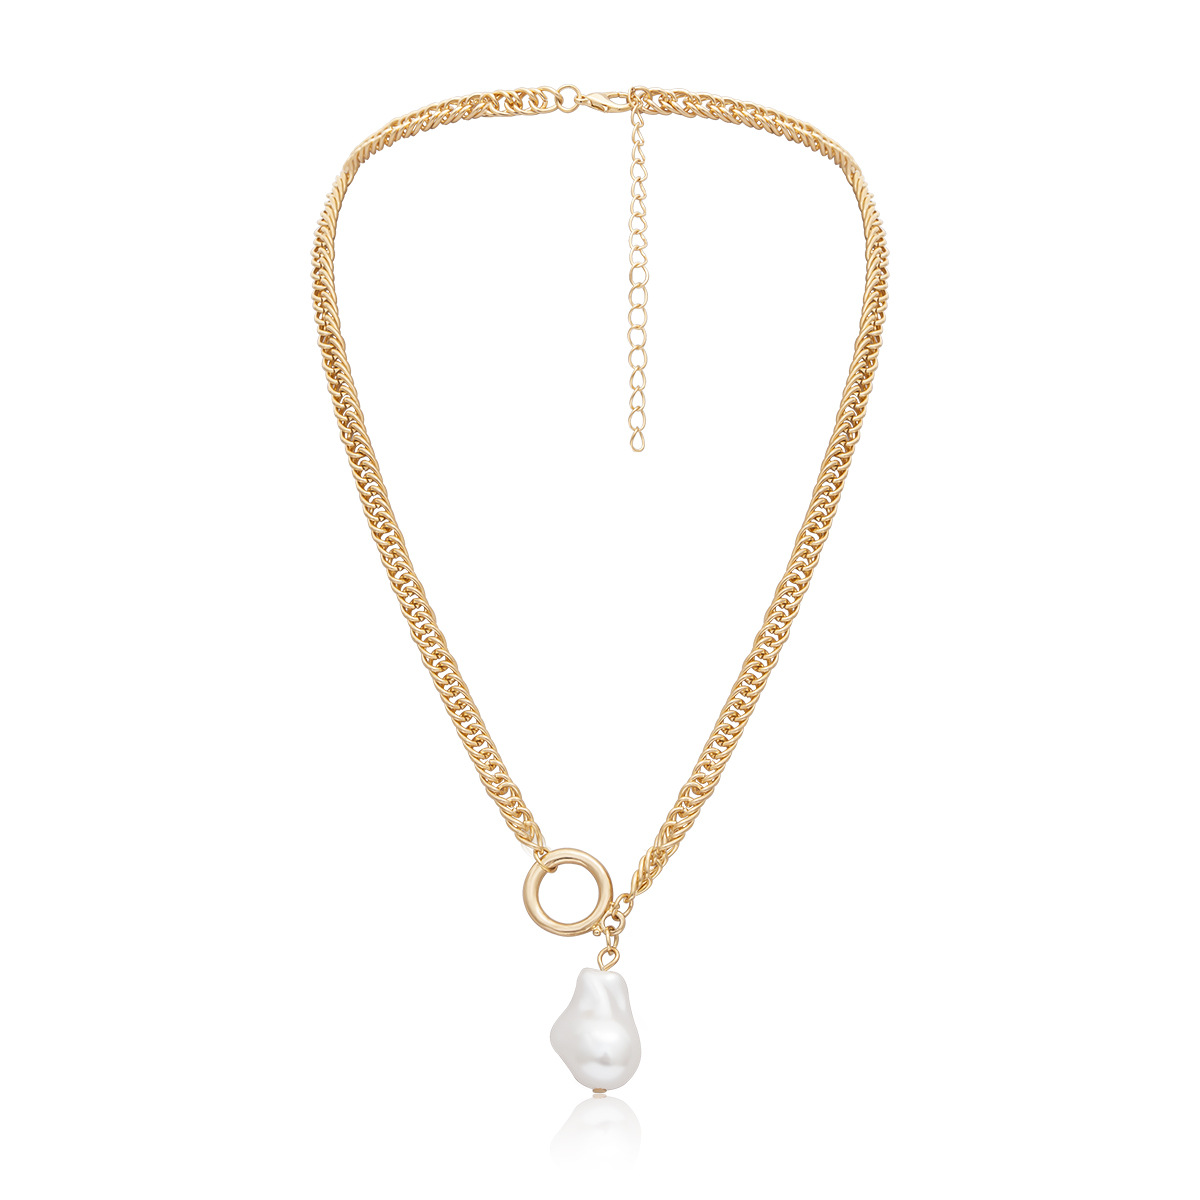 Womens teardropshaped plated beads iron chain Necklaces NHXR137877